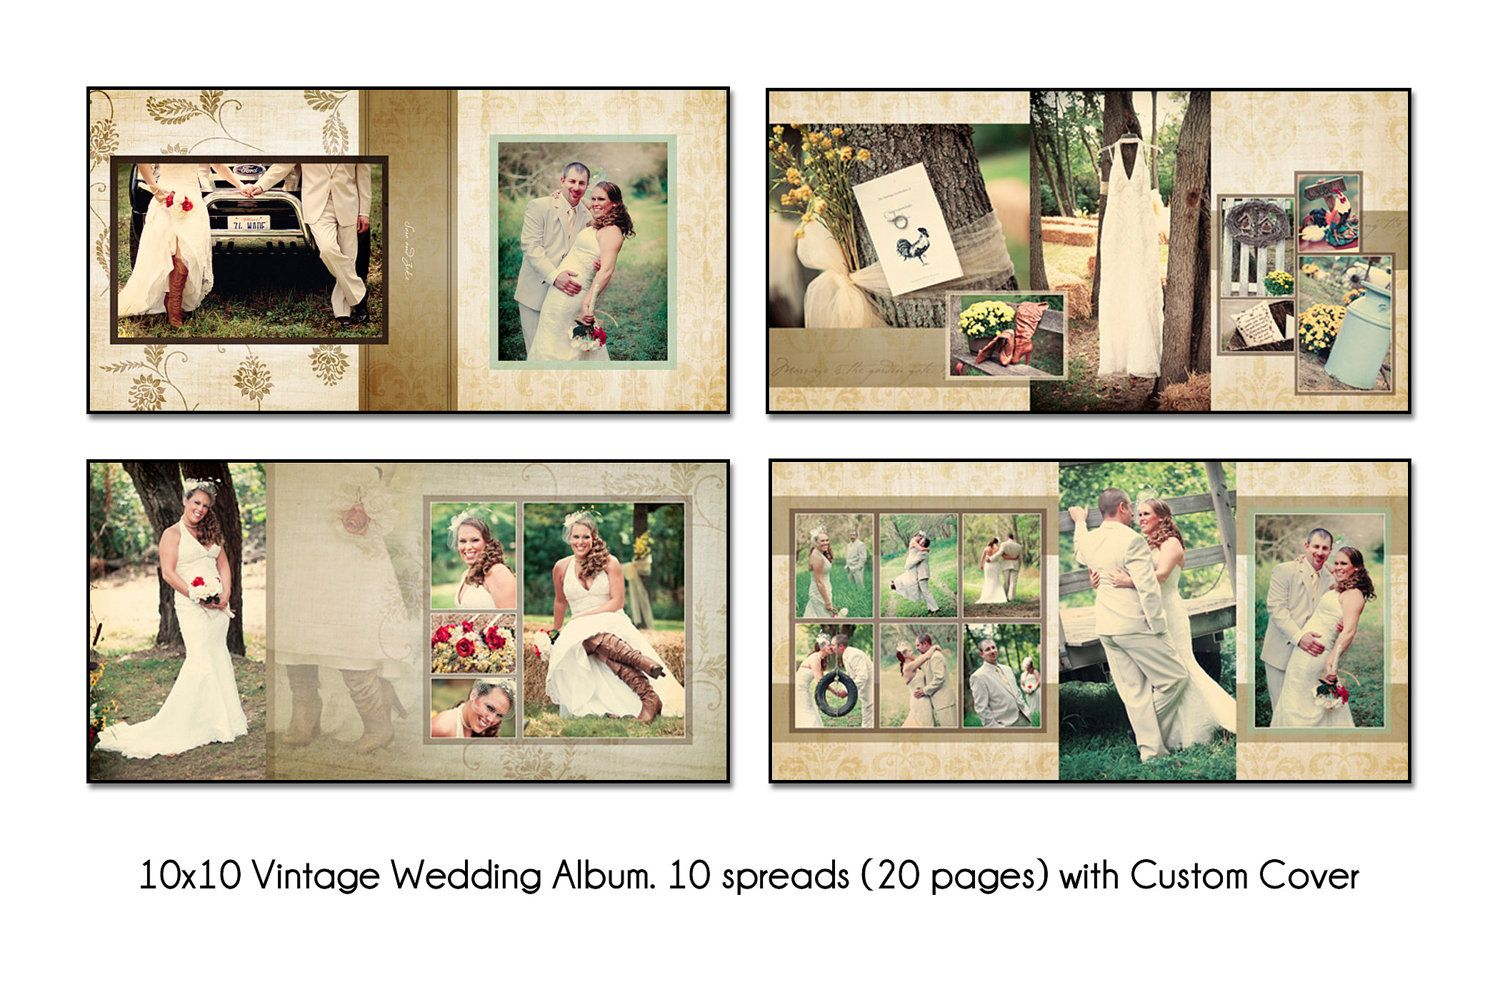 PSD Wedding Album Template - VINTAGE - 10x10 10spread(20 page ...